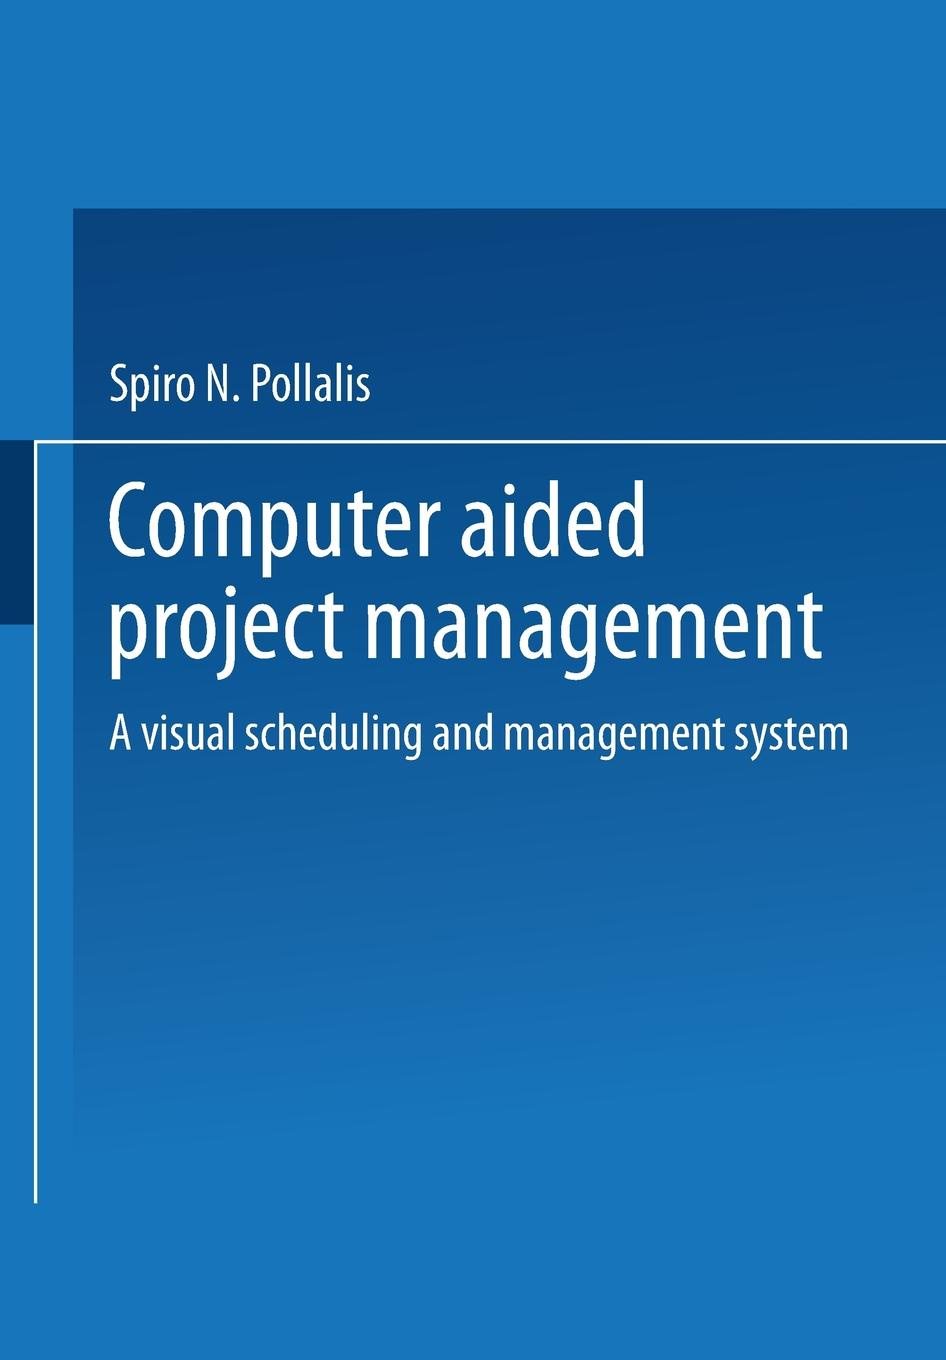 купить Spiro N. Pollalis Computer-Aided Project Management. A Visual Scheduling and Management System по цене 9227 рублей